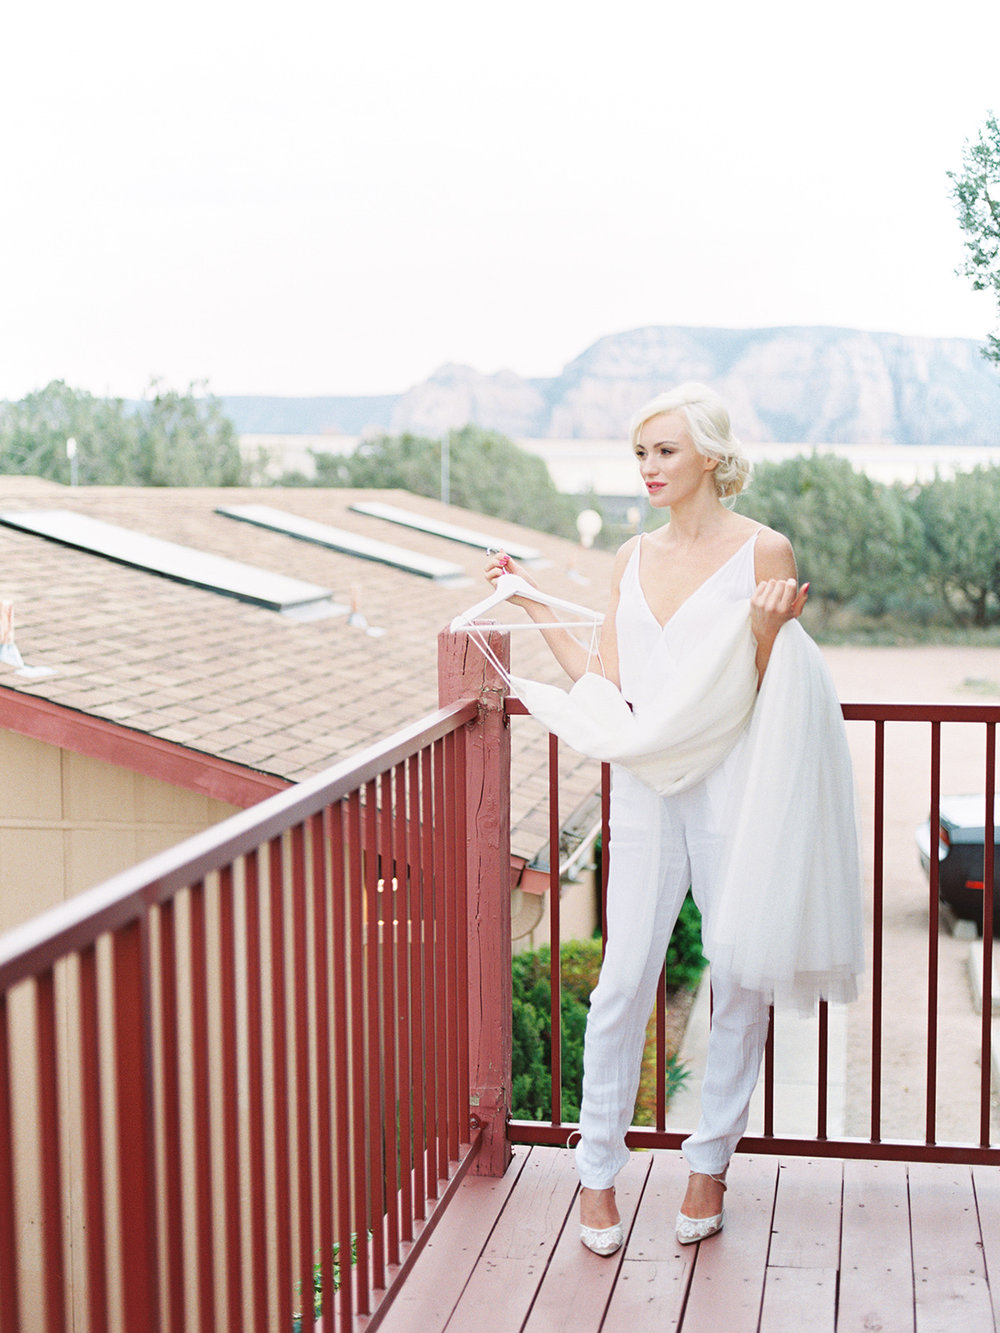 York Sedona Elopement - Ball Photo Co Fine Art Film Wedding Photography-1.jpg